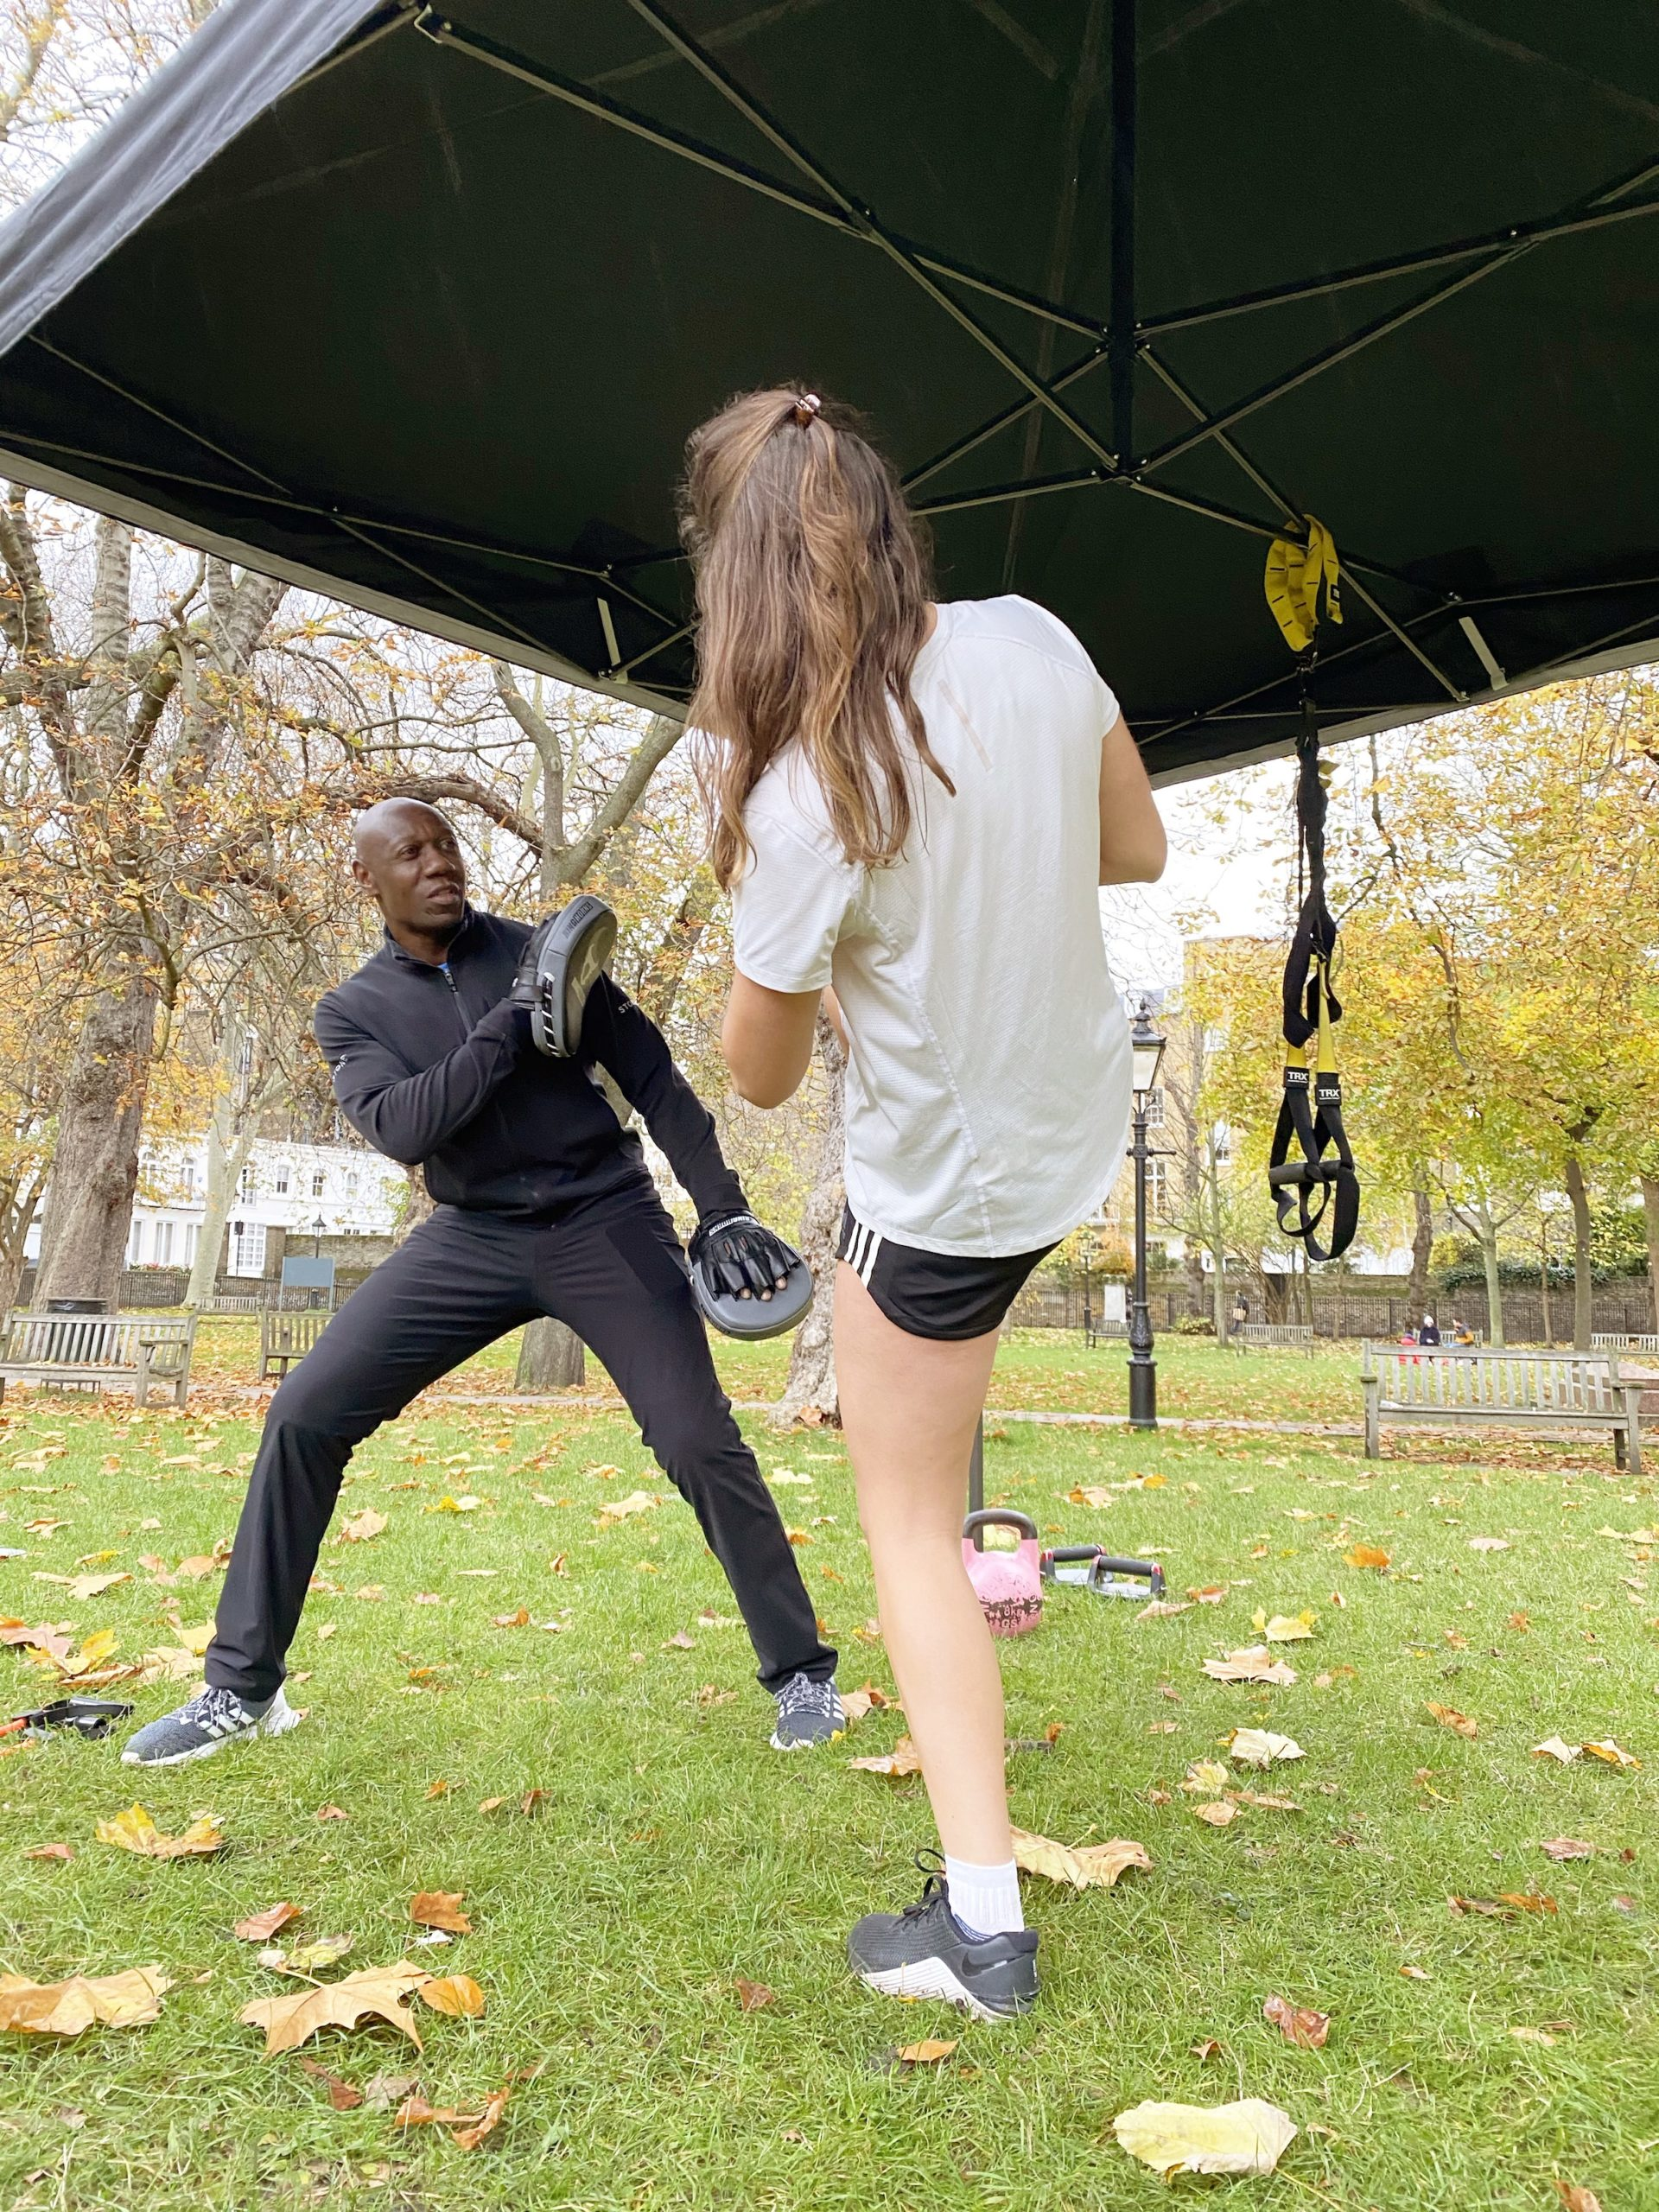 Pad training in the park